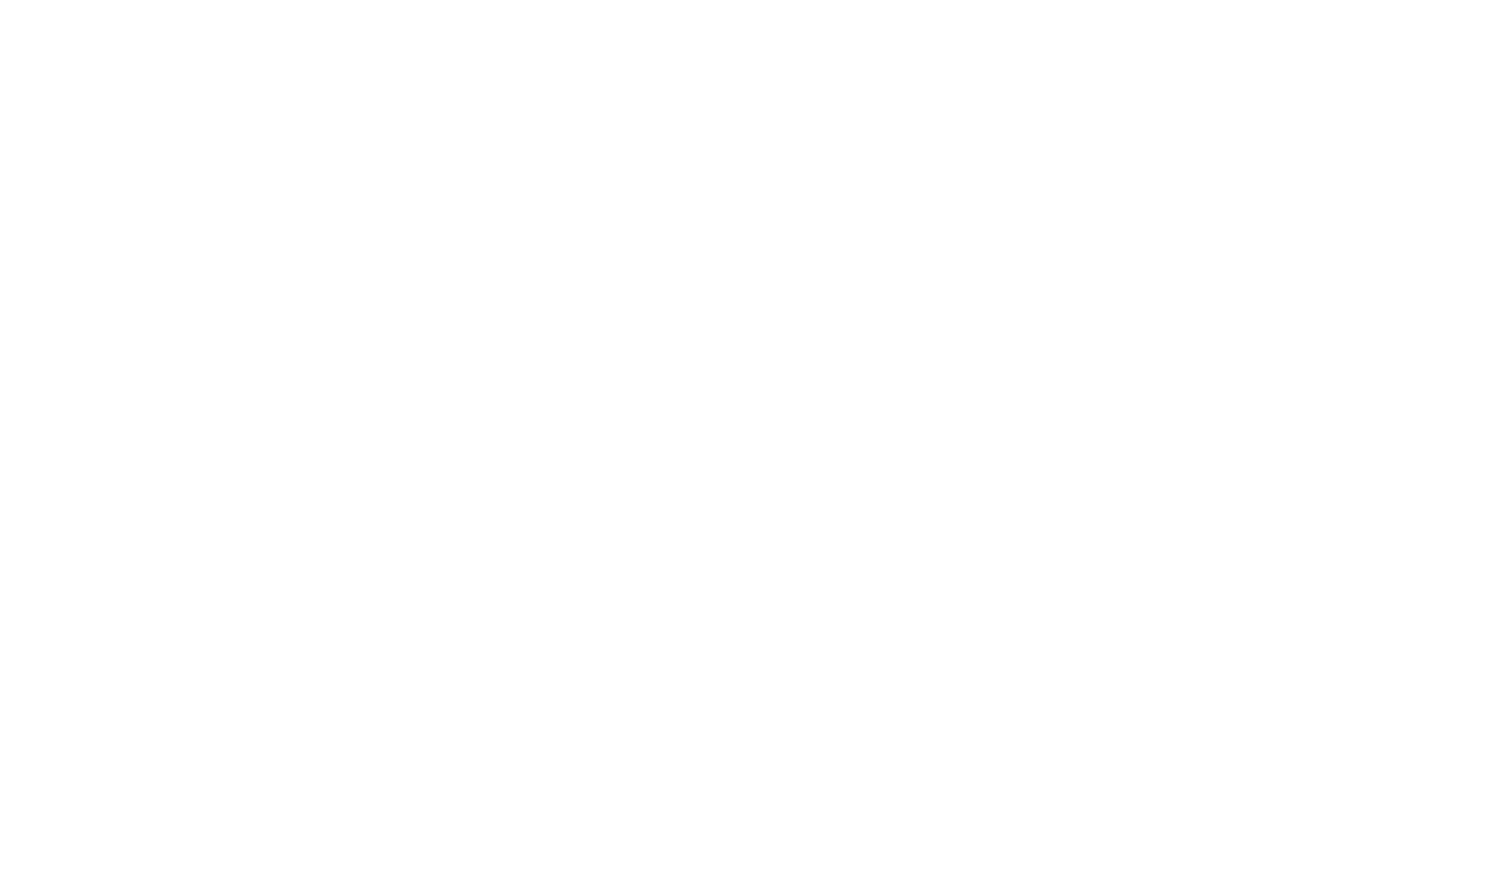 The Villager Tavern